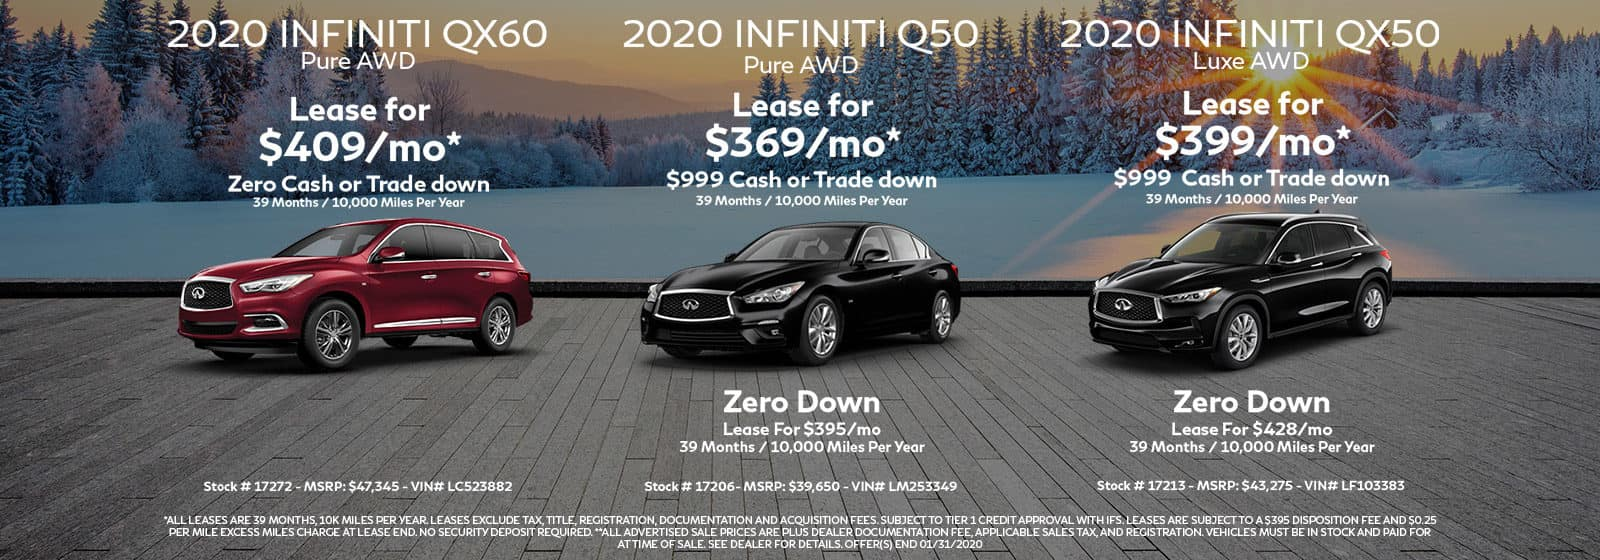 Infiniti Of Westborough >> Herb Chambers Infiniti Of Westborough Infiniti Dealer